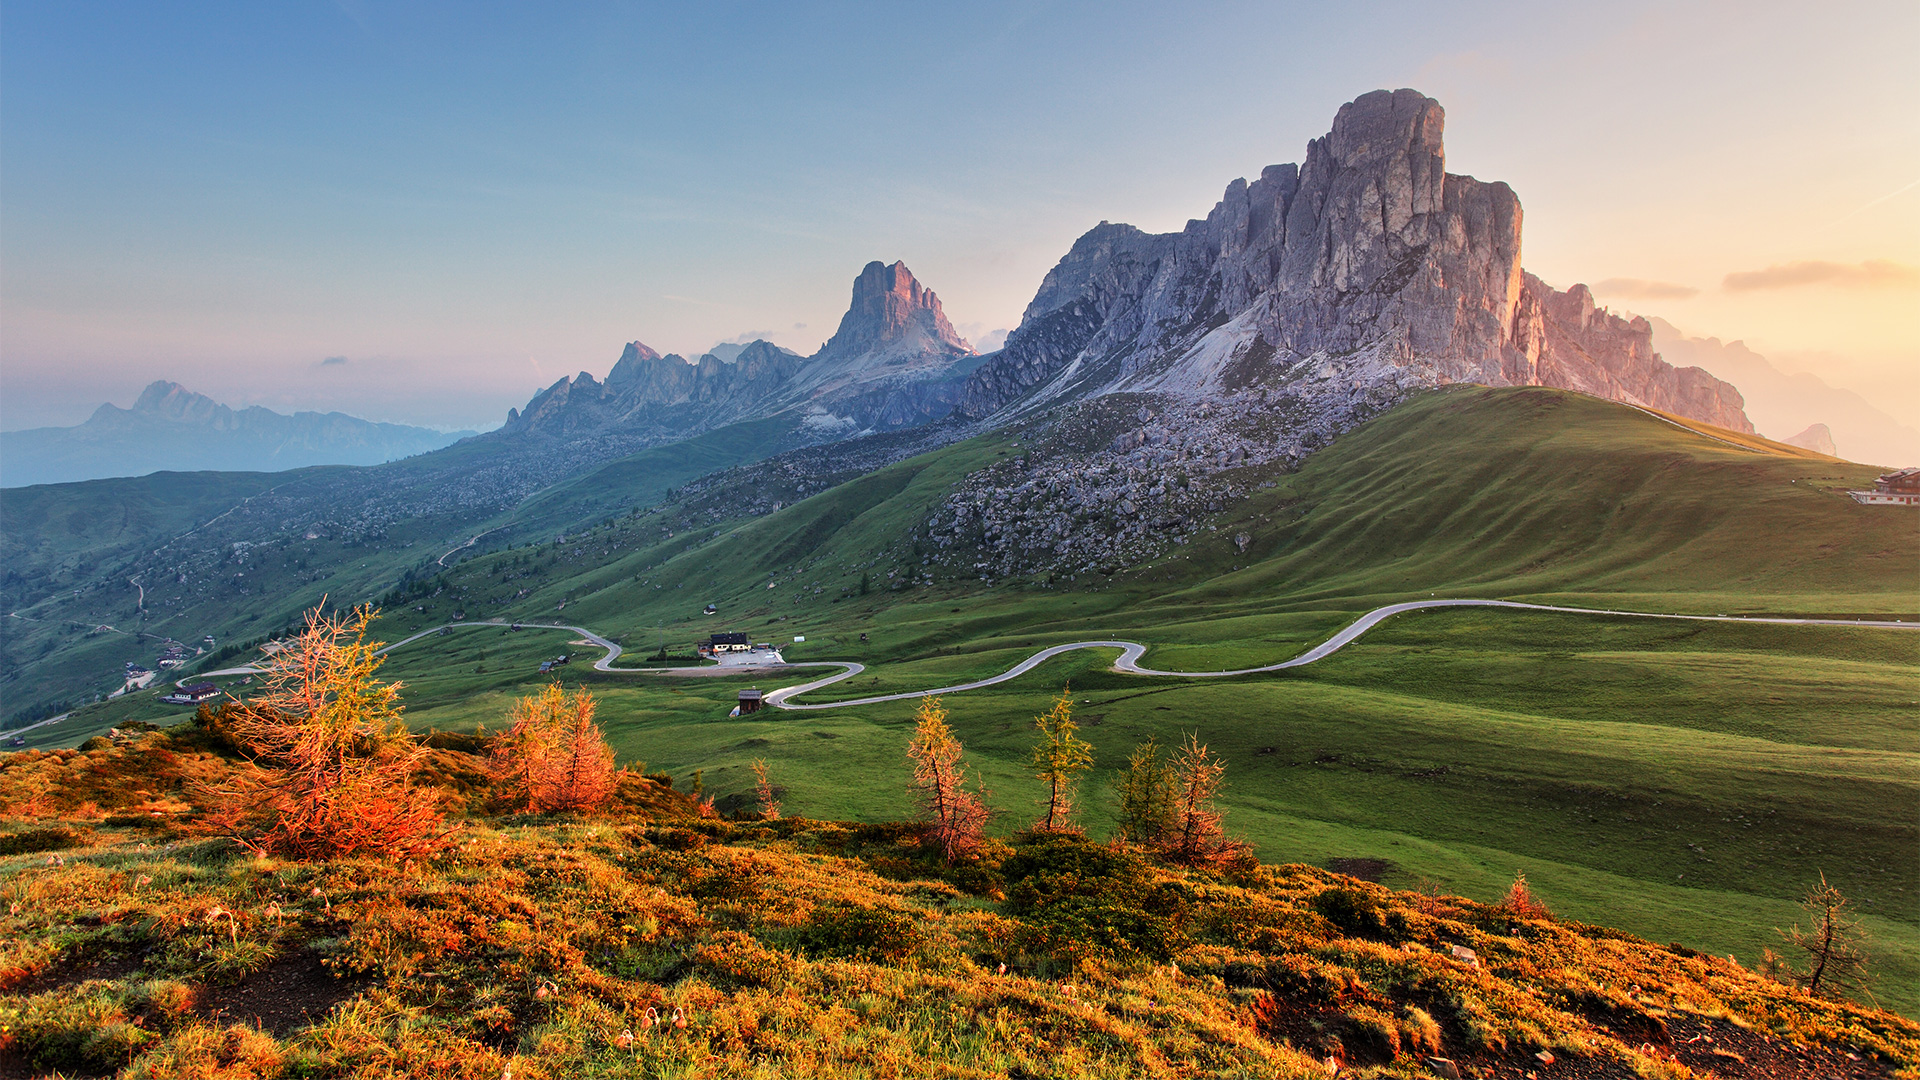 General 1920x1080 nature landscape hairpin turns trees house road grass field sky clouds mountains dolomite alps Dolomites (mountains) Italy Alps